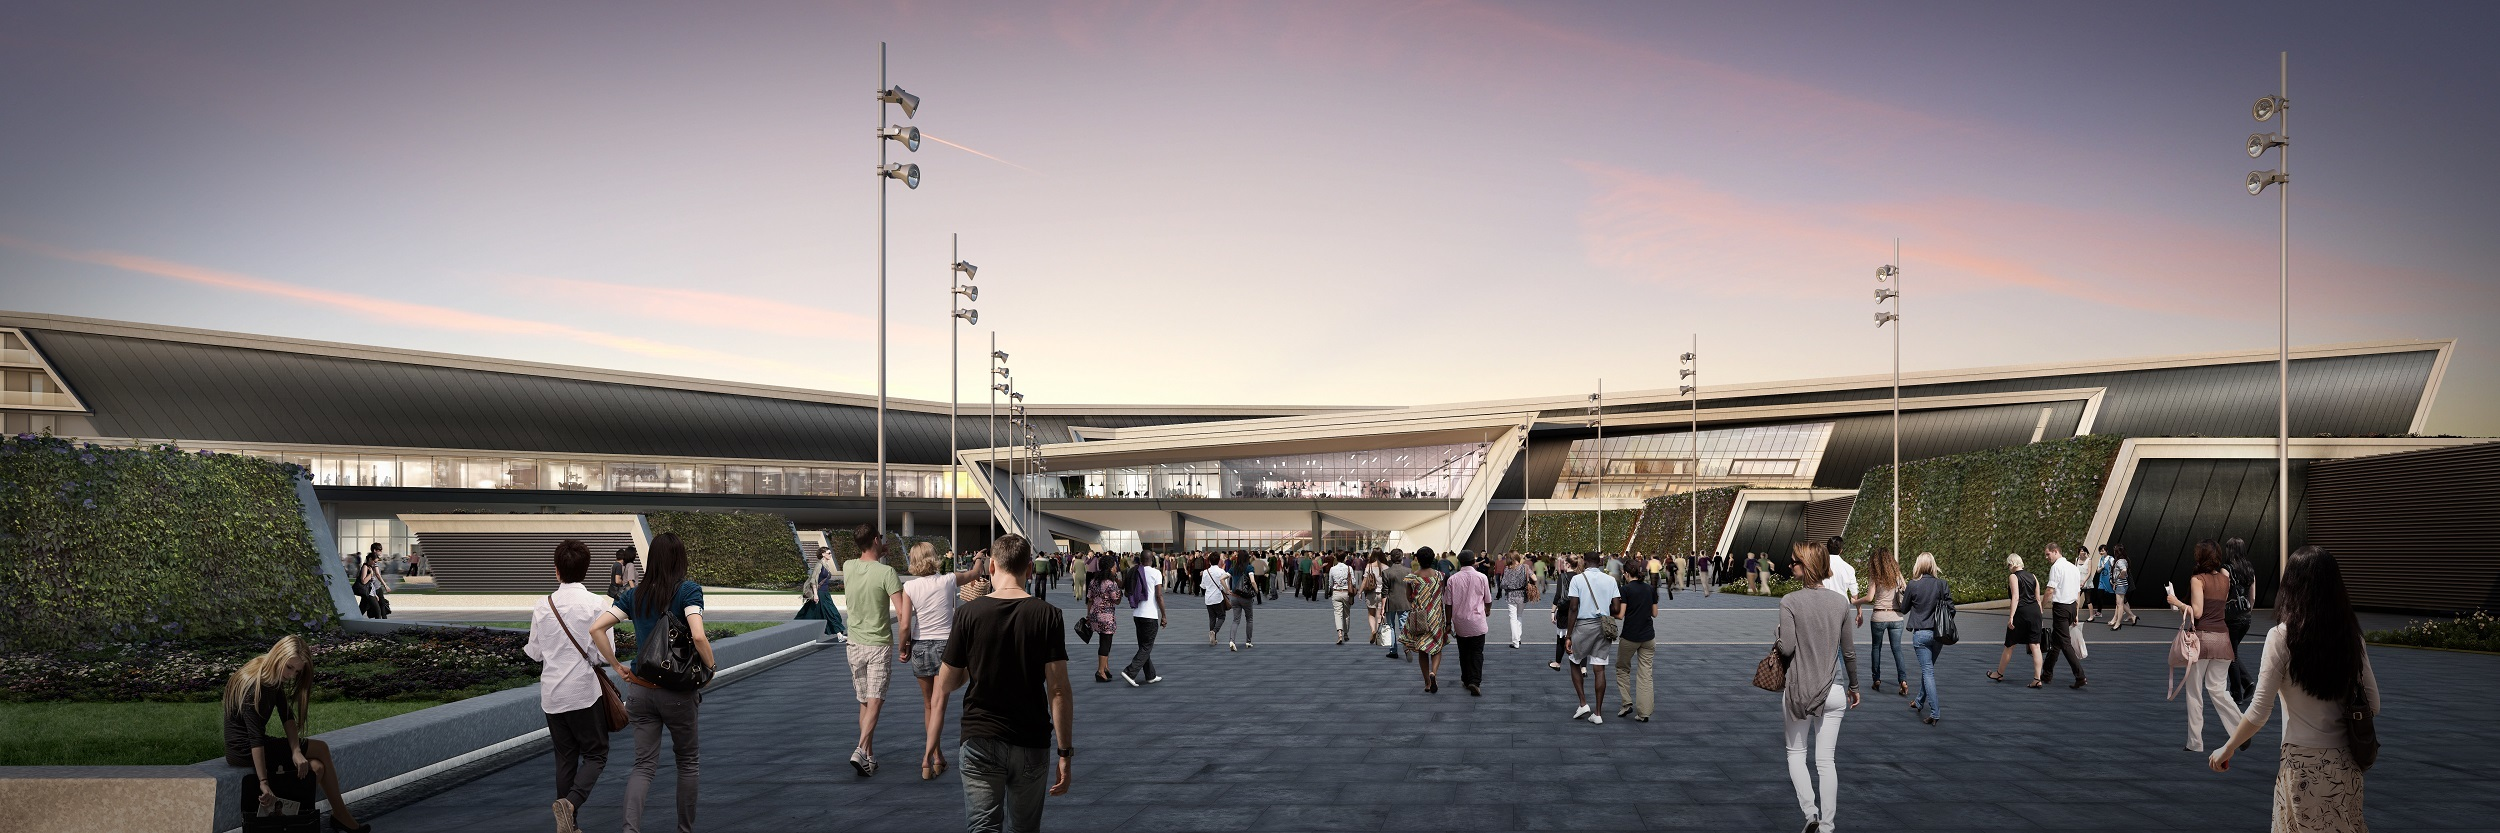 An artist's impression of the new AECC